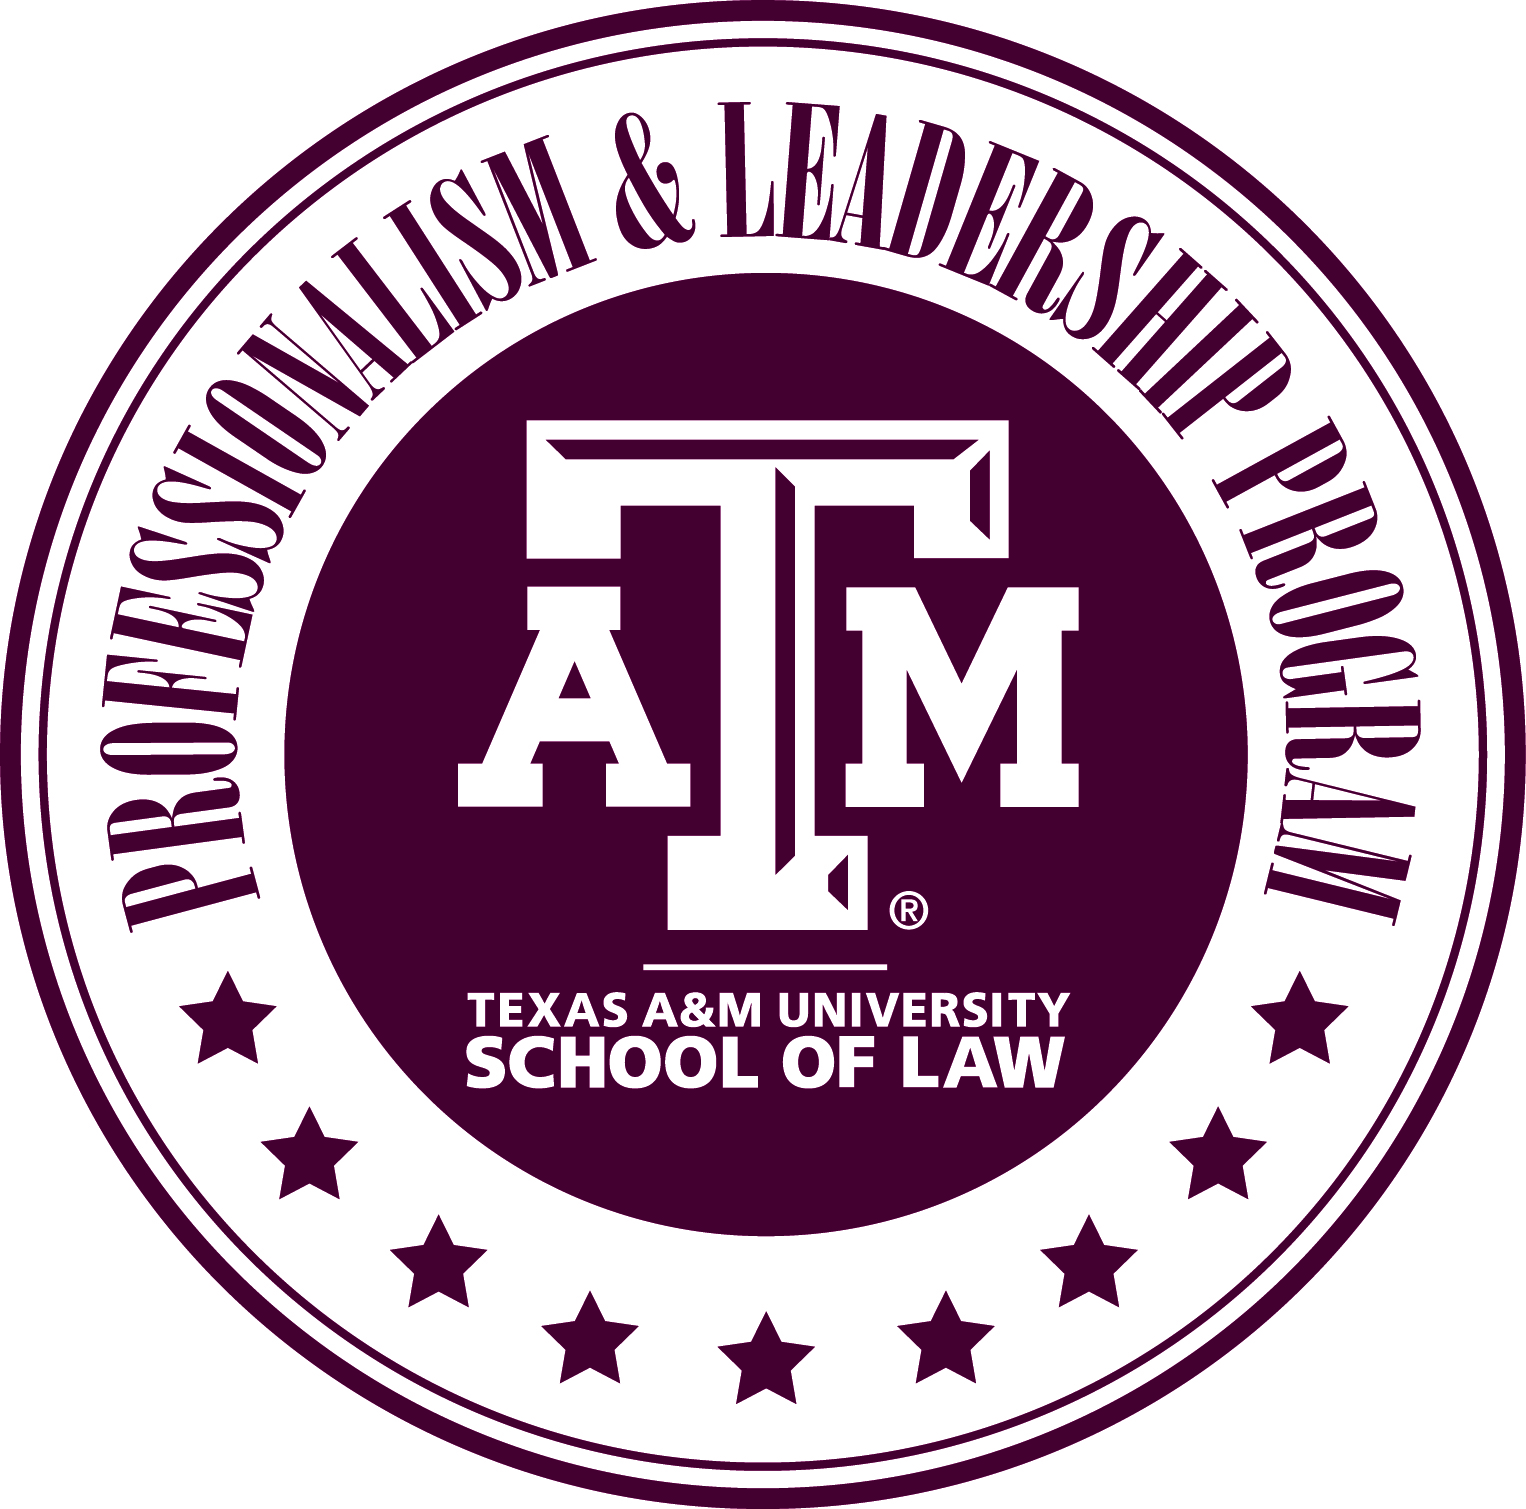 Professionalism & Leadership Program